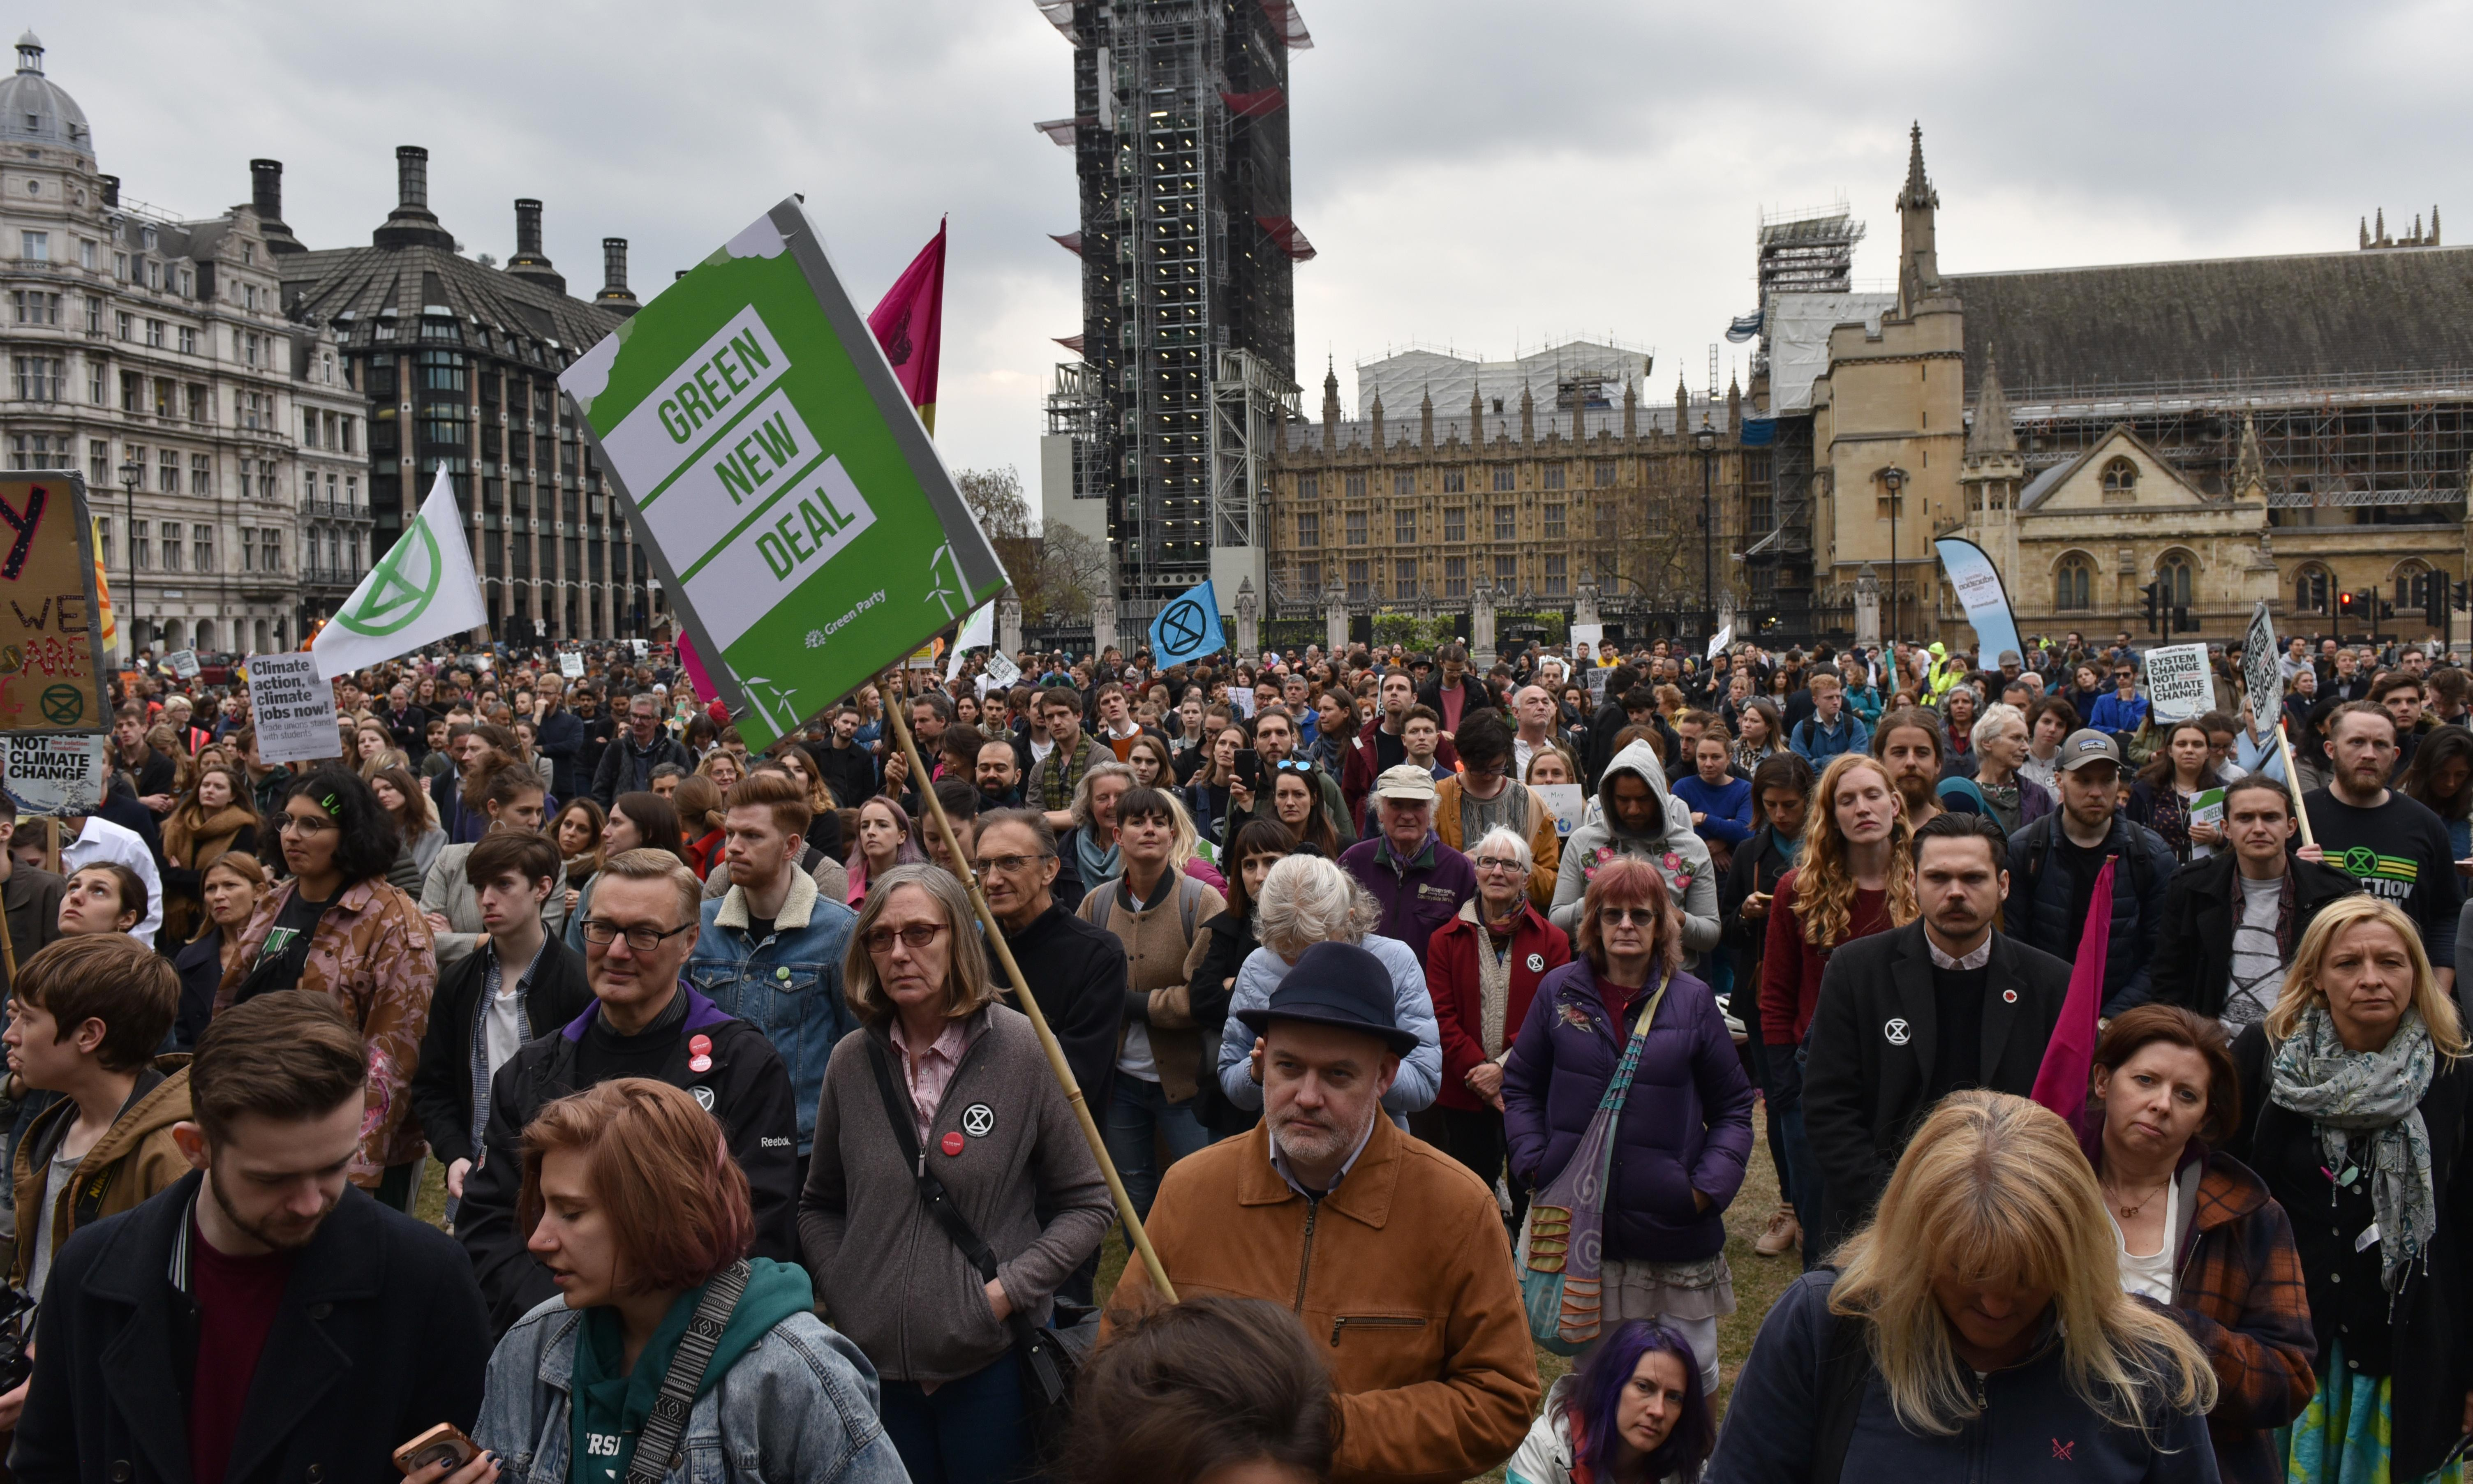 Extinction Rebellion urges ad industry to use its power for good